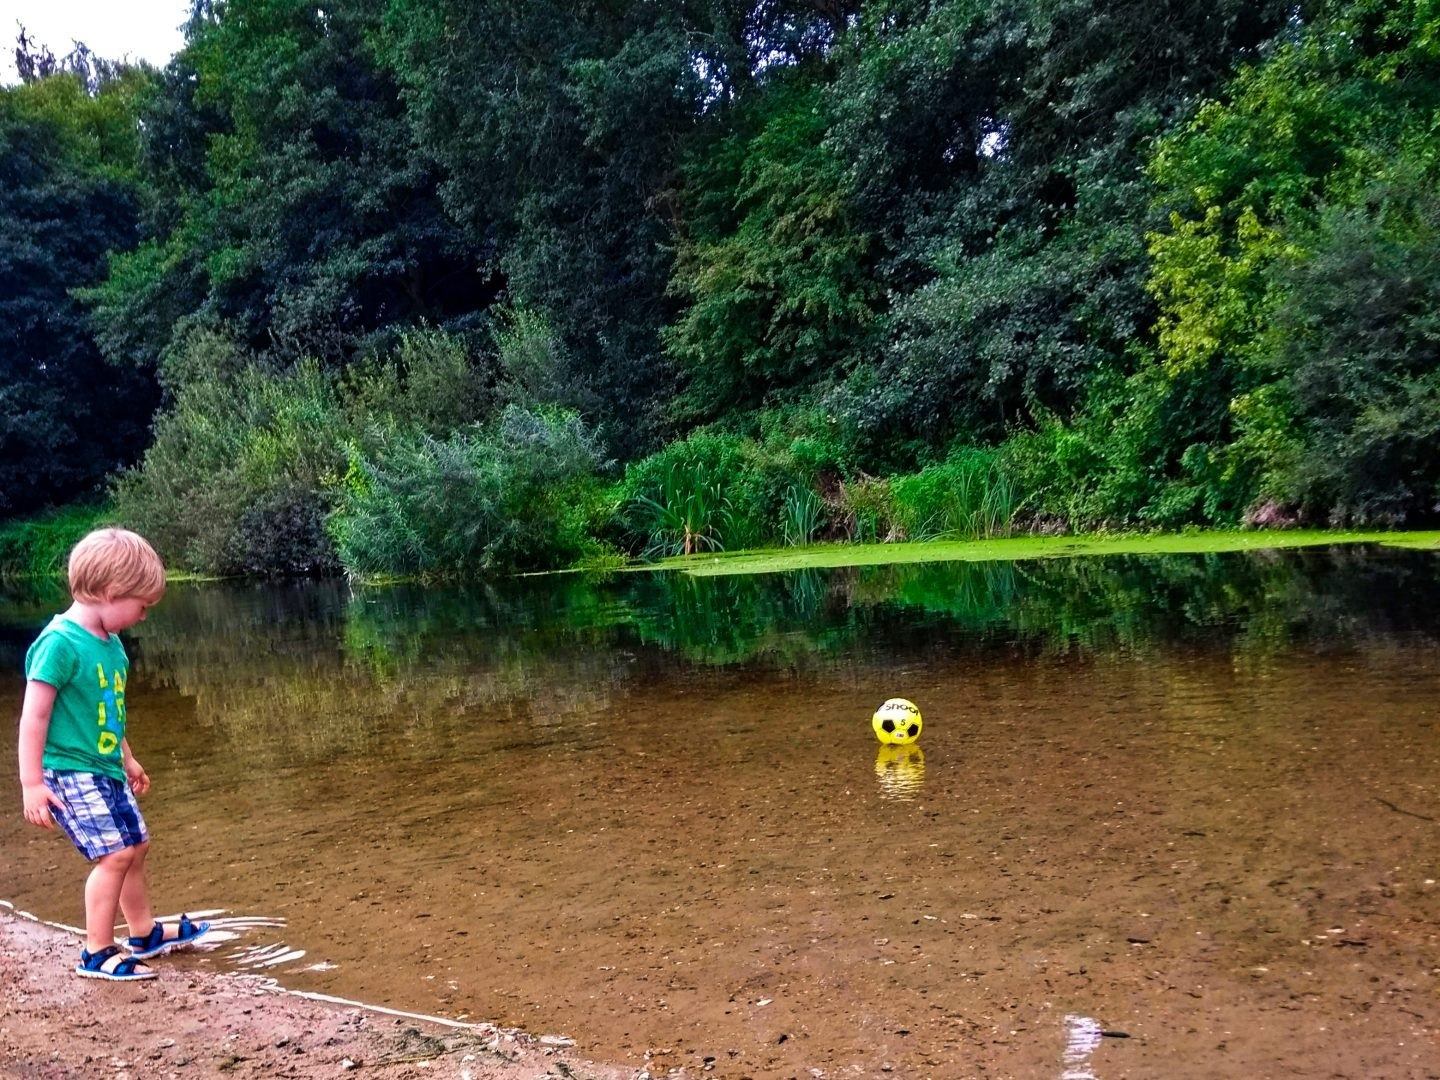 A boy next to a river in Santon Downham in Suffolk, with a yellow ball floating on the water and greenery surrounding it